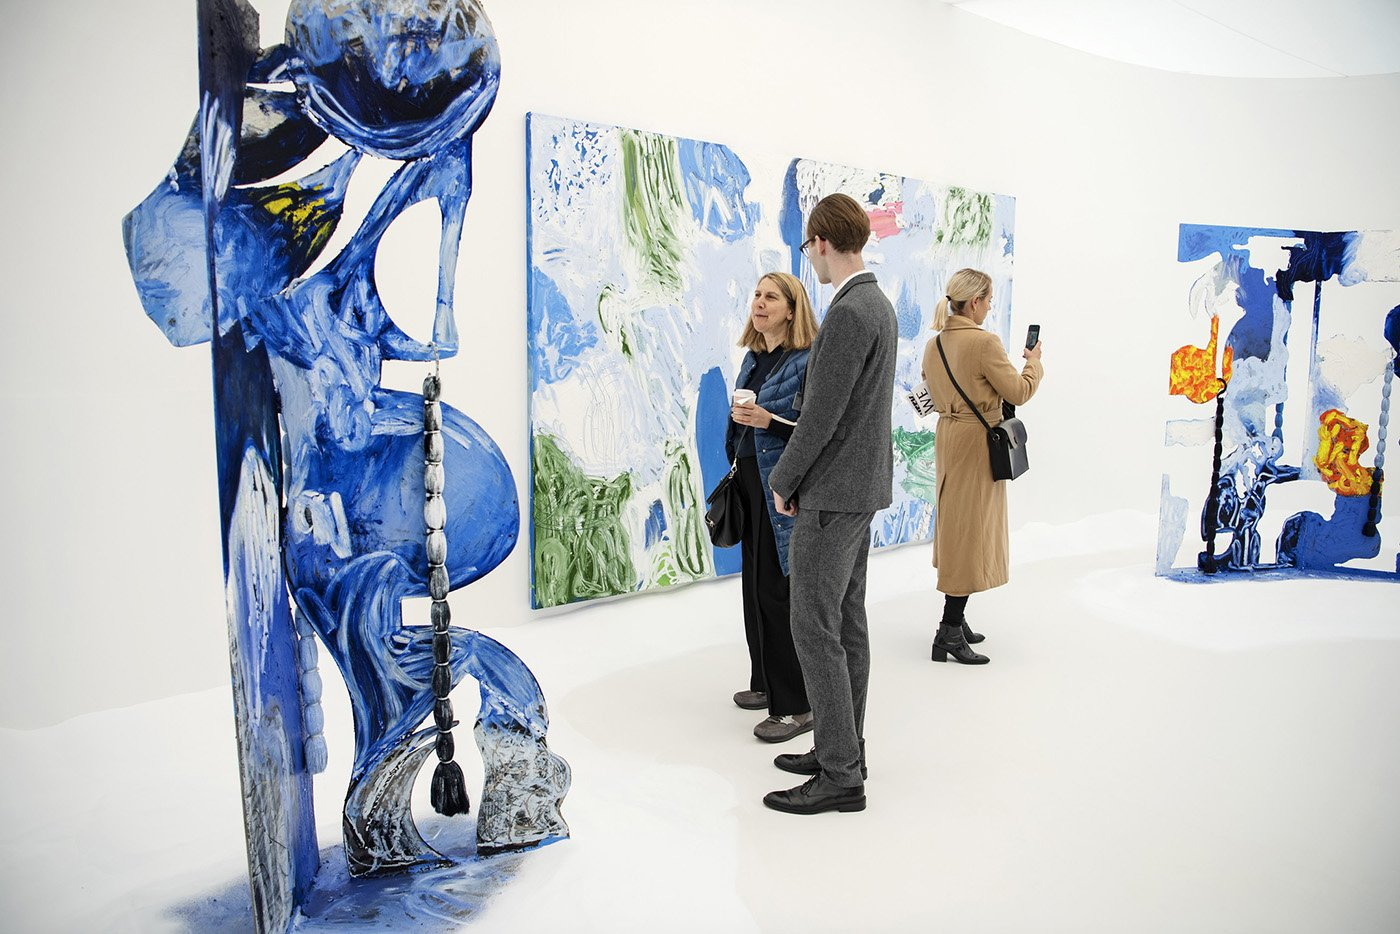 Donna Huanca, Simon Lee Gallery, Photo by Linda Nylind. Courtesy Linda Nylind Frieze